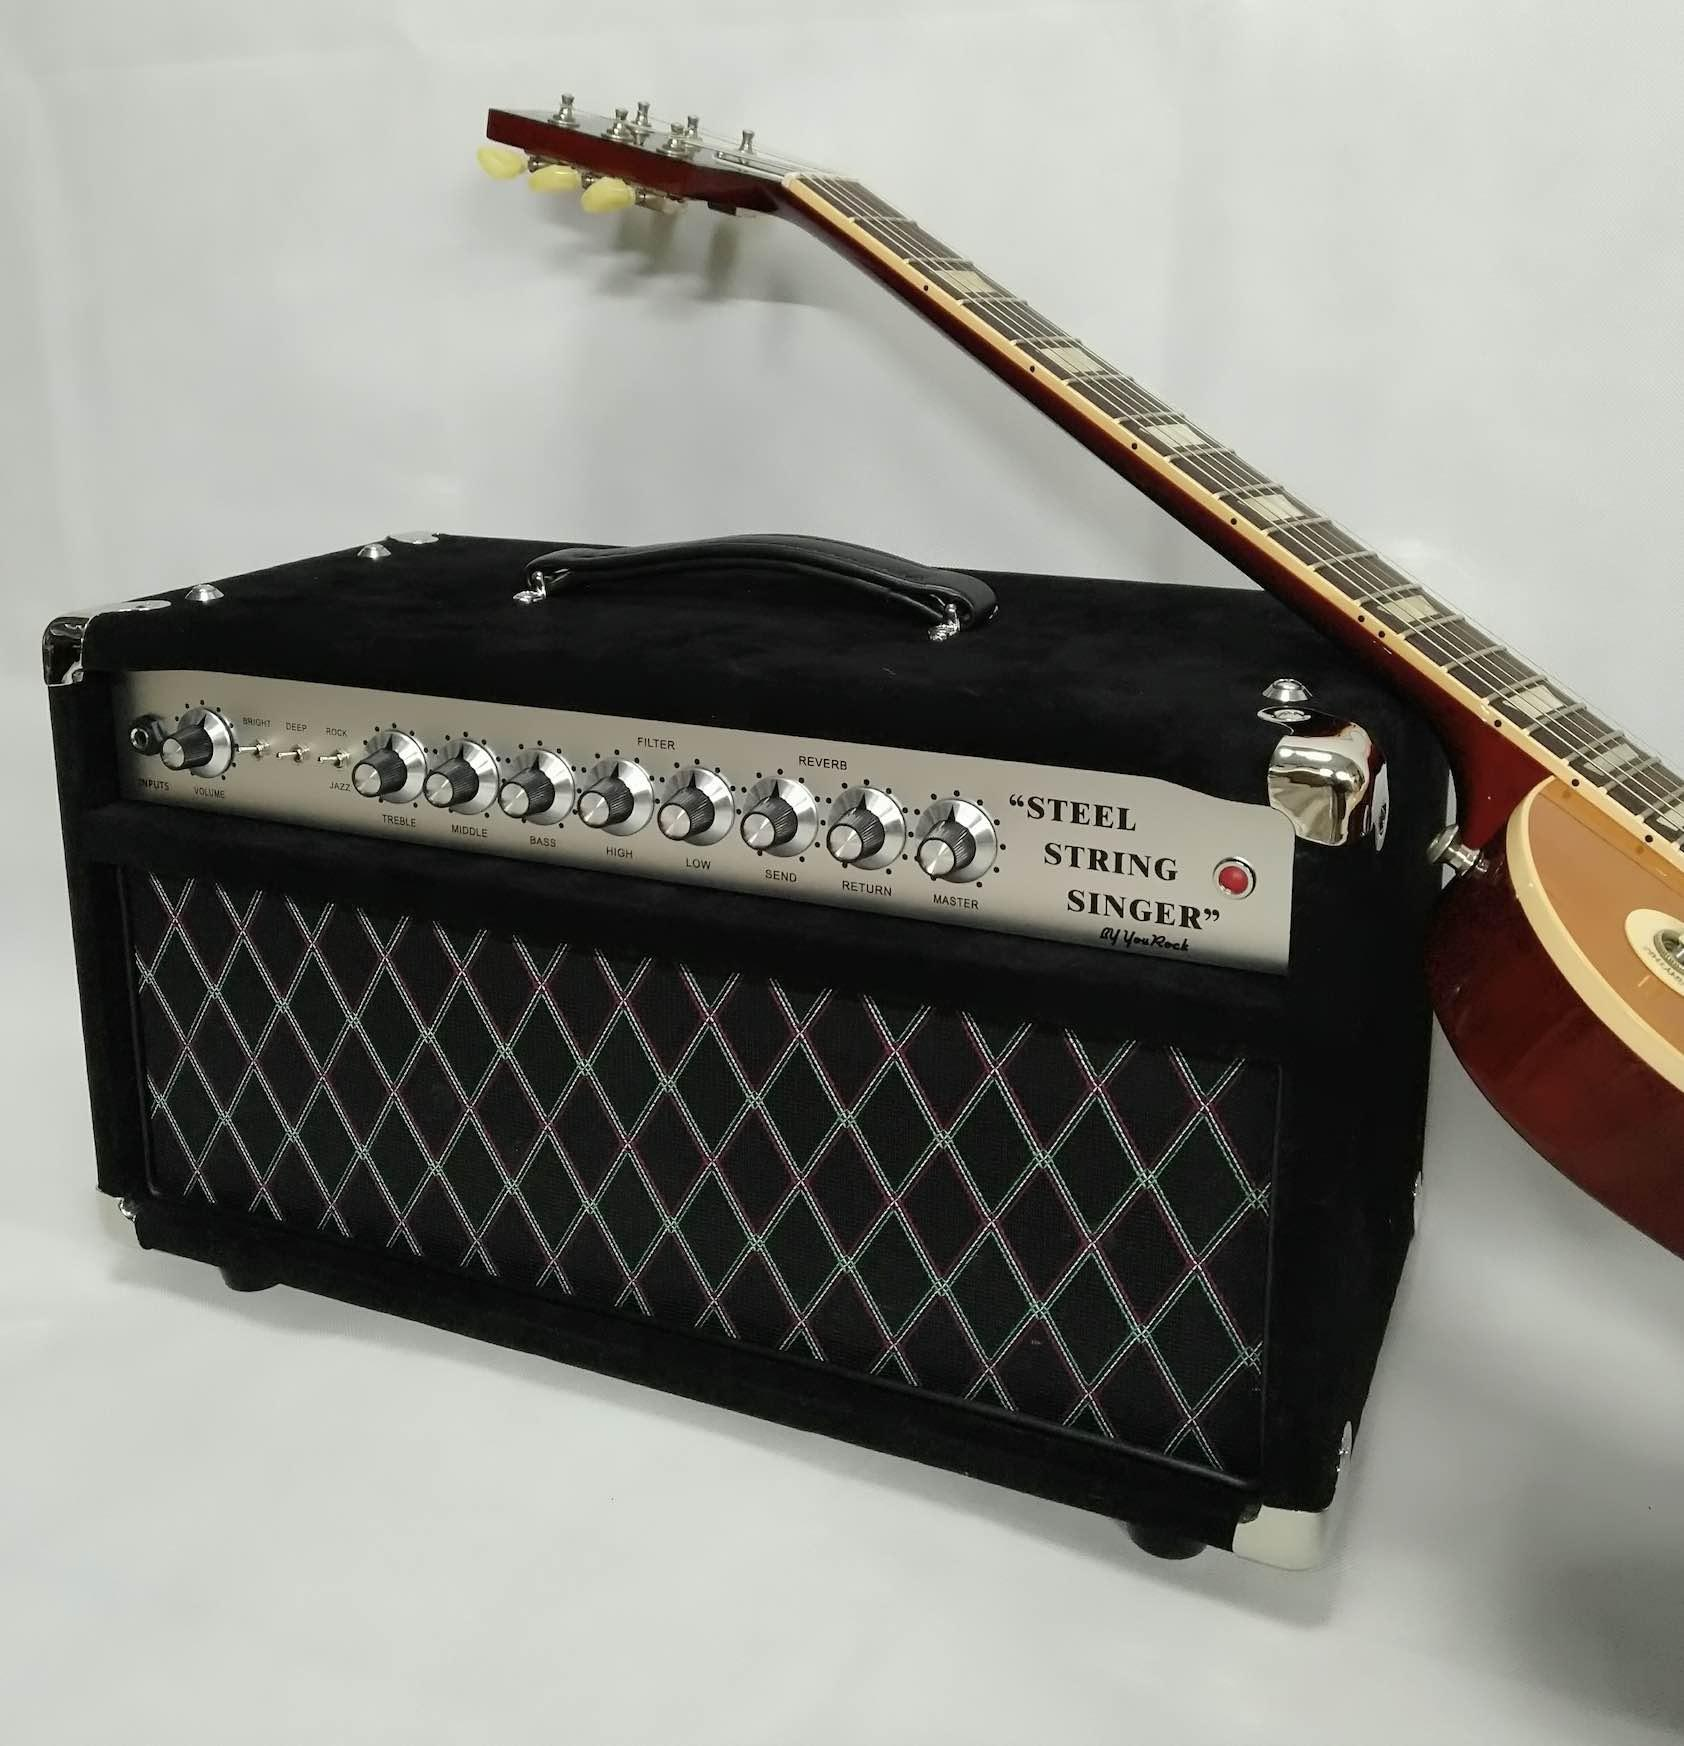 Custom 1983 Tube Guitar Amplifier Head 50W Guitar Amp Tone SSS50 Steel String Singer Valve Handwired Guitar Amplifier Customize Faceplate